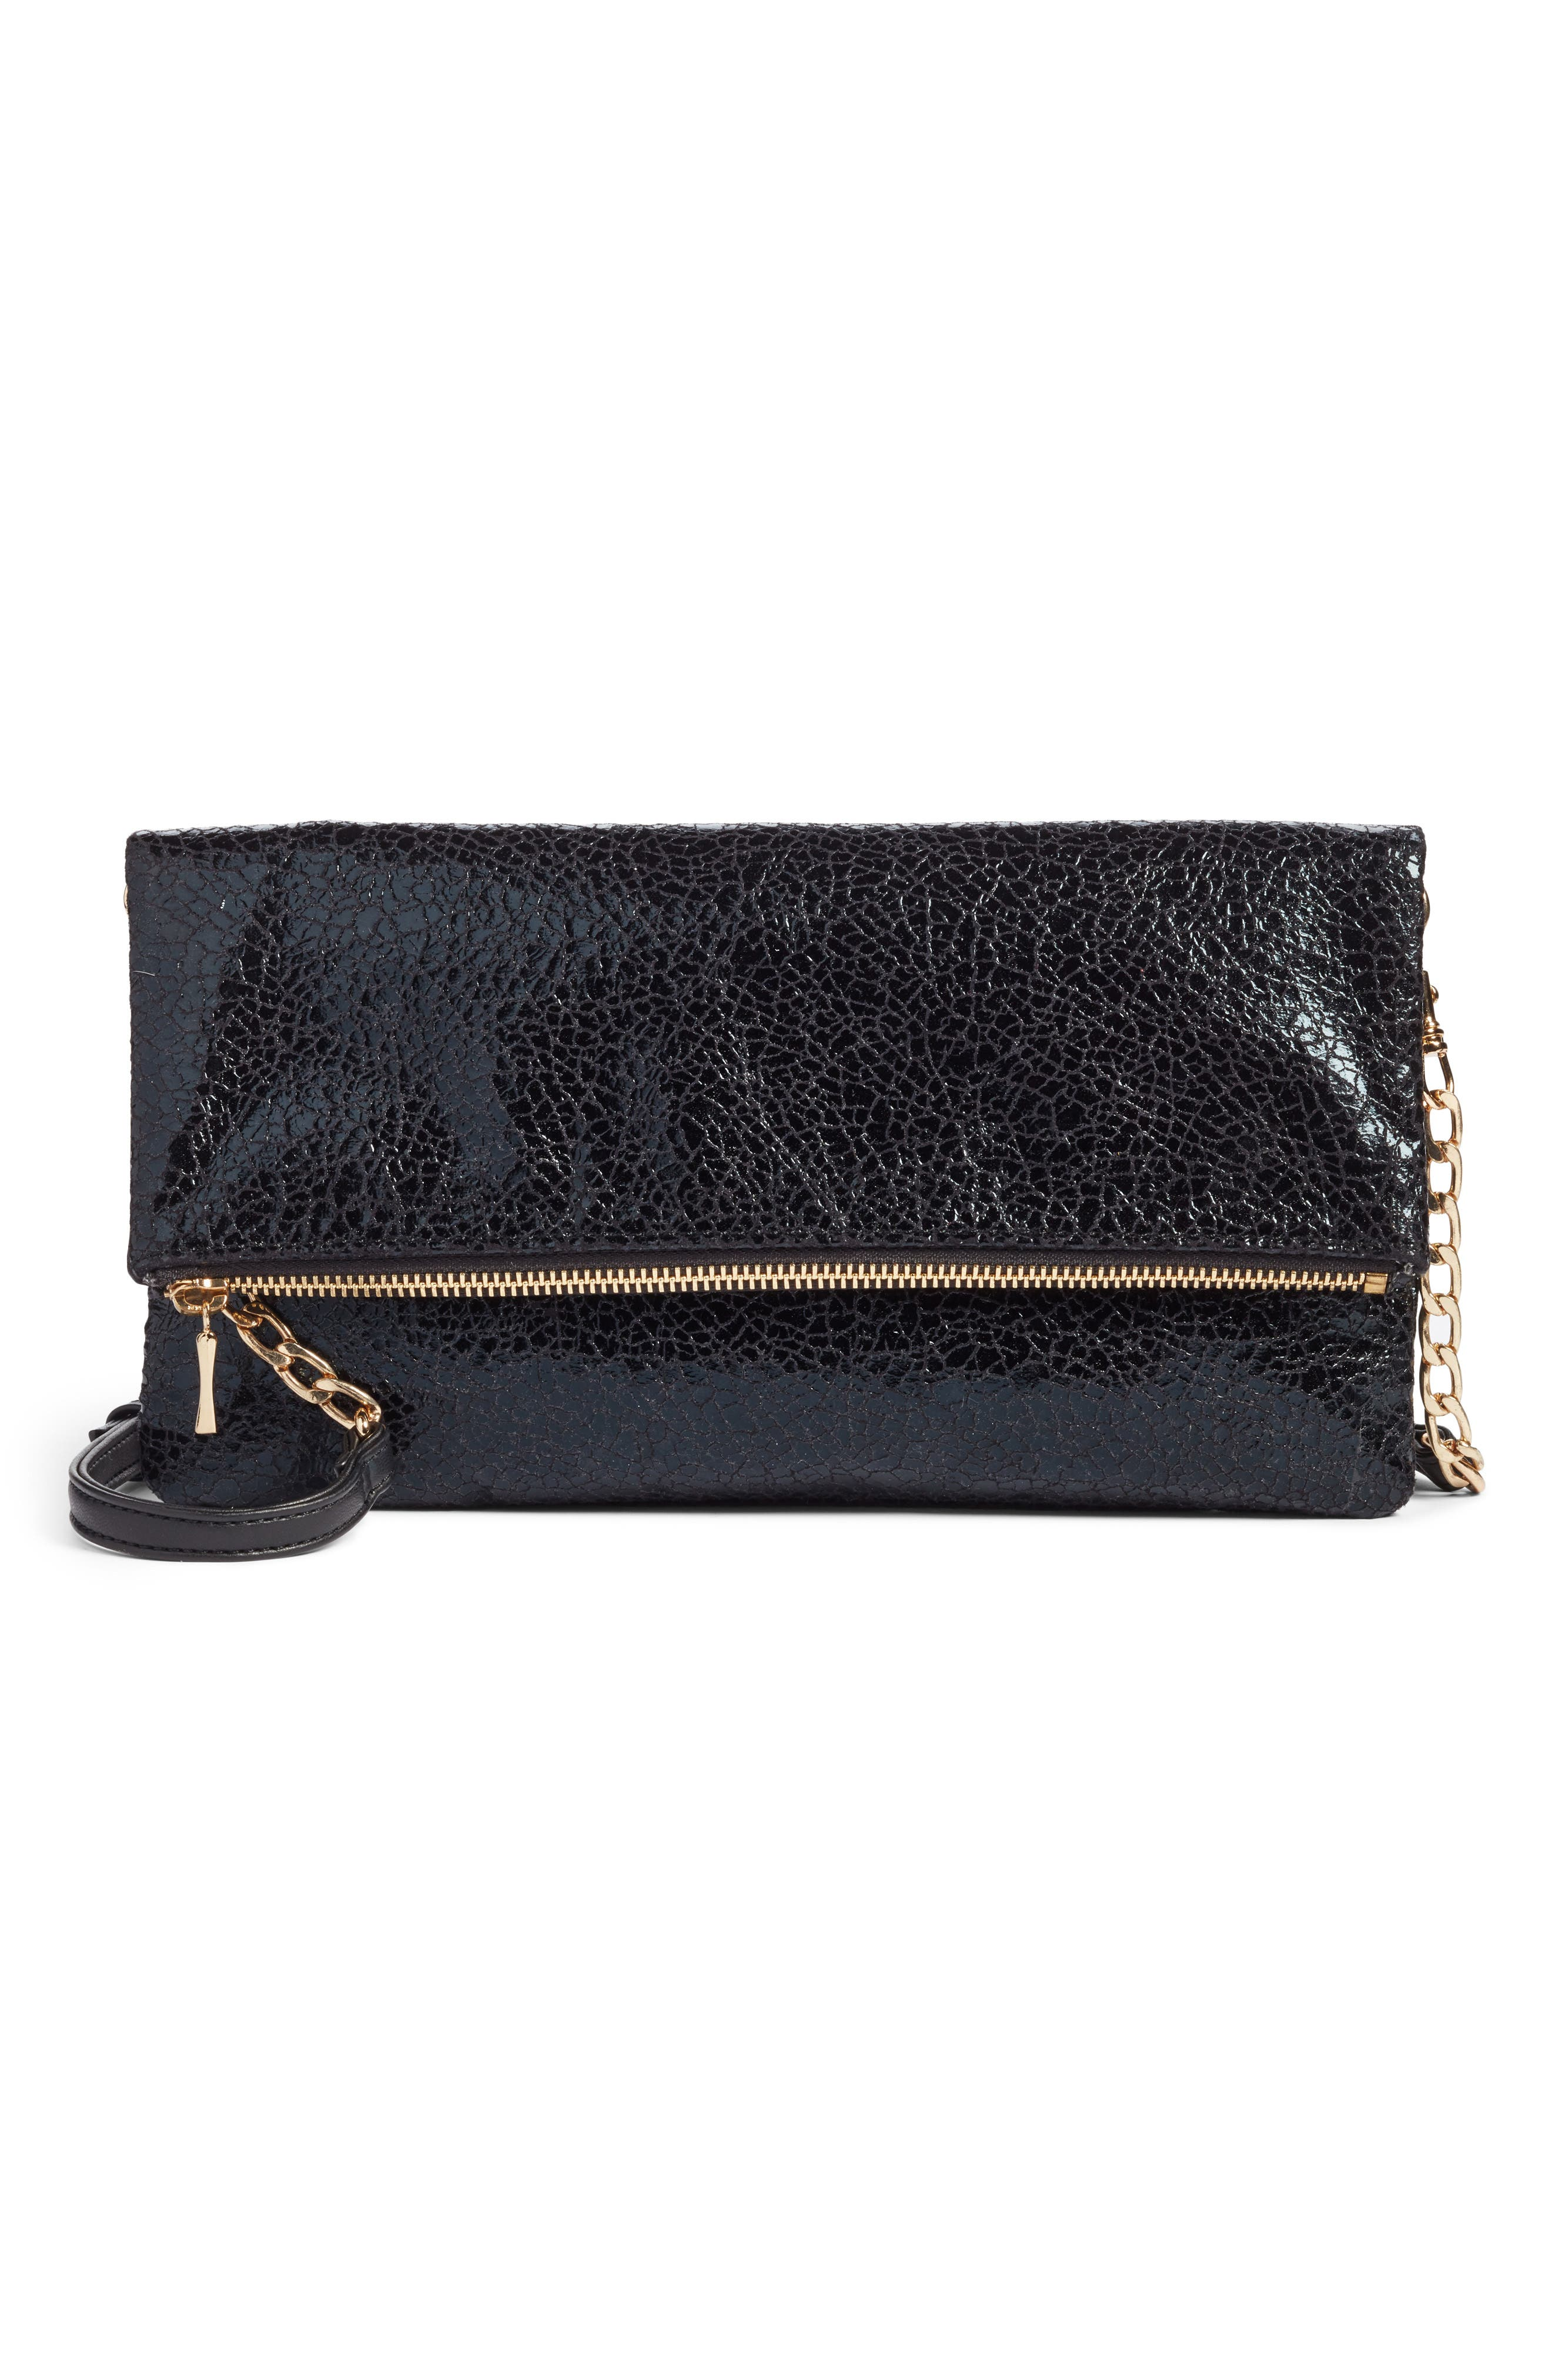 Main Image - Sole Society Black Crackle Faux Leather Foldover Clutch